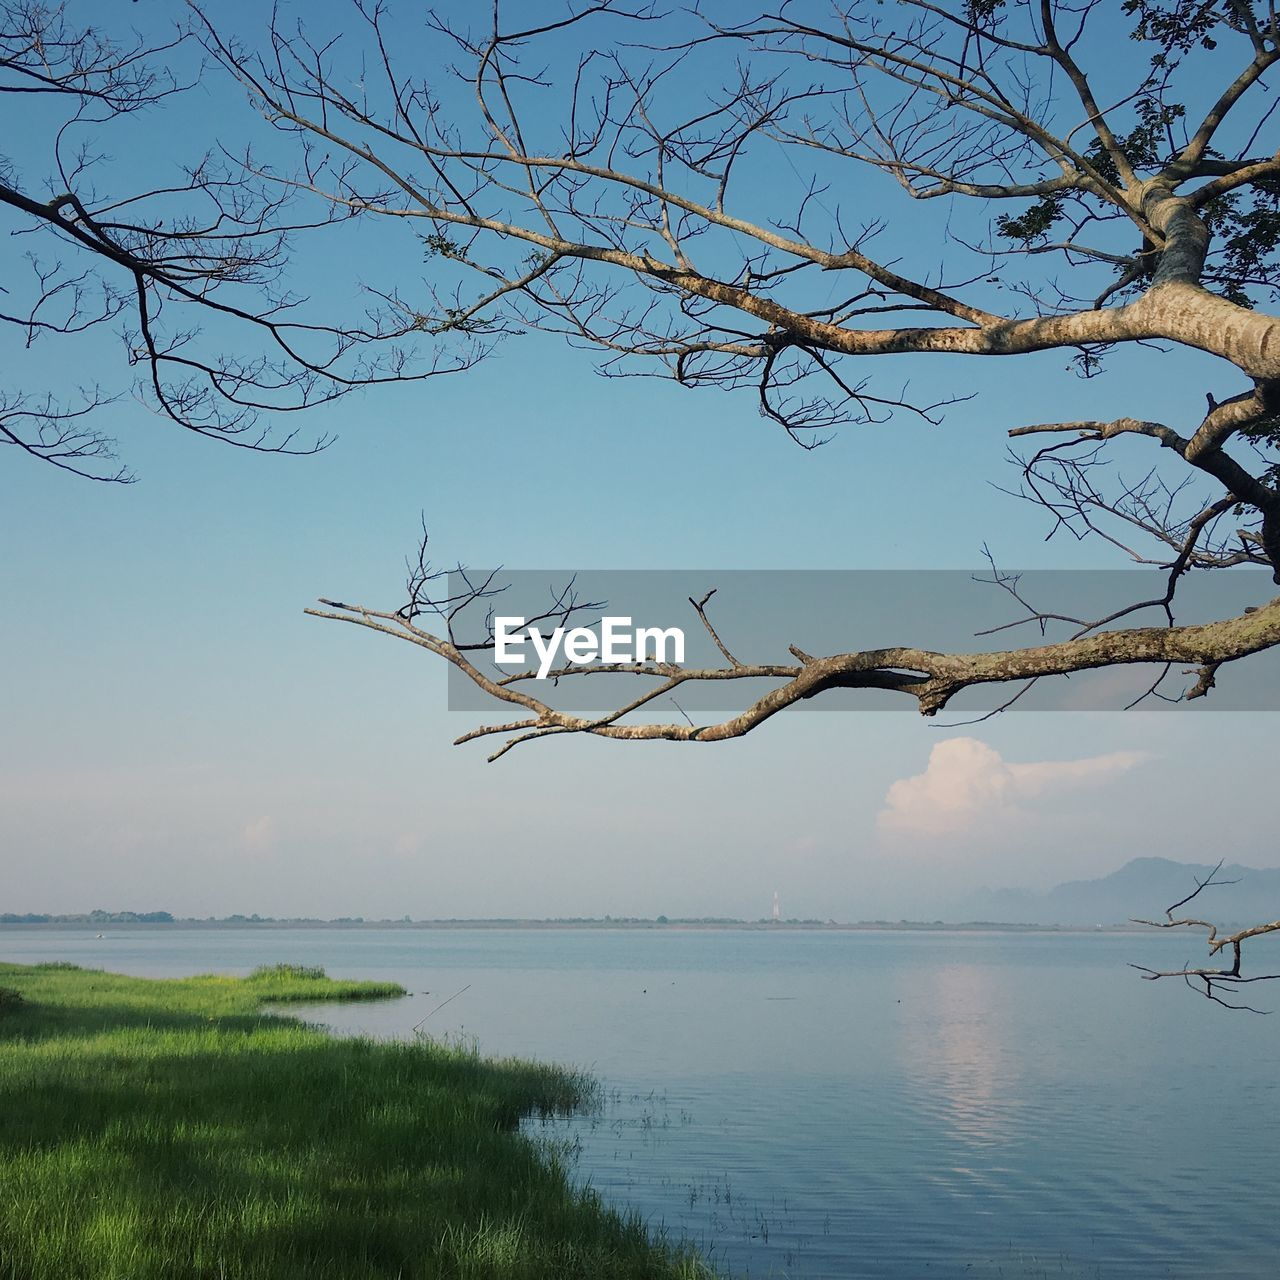 tree, water, sky, tranquility, plant, scenics - nature, bare tree, tranquil scene, branch, beauty in nature, nature, no people, lake, non-urban scene, day, outdoors, land, grass, idyllic